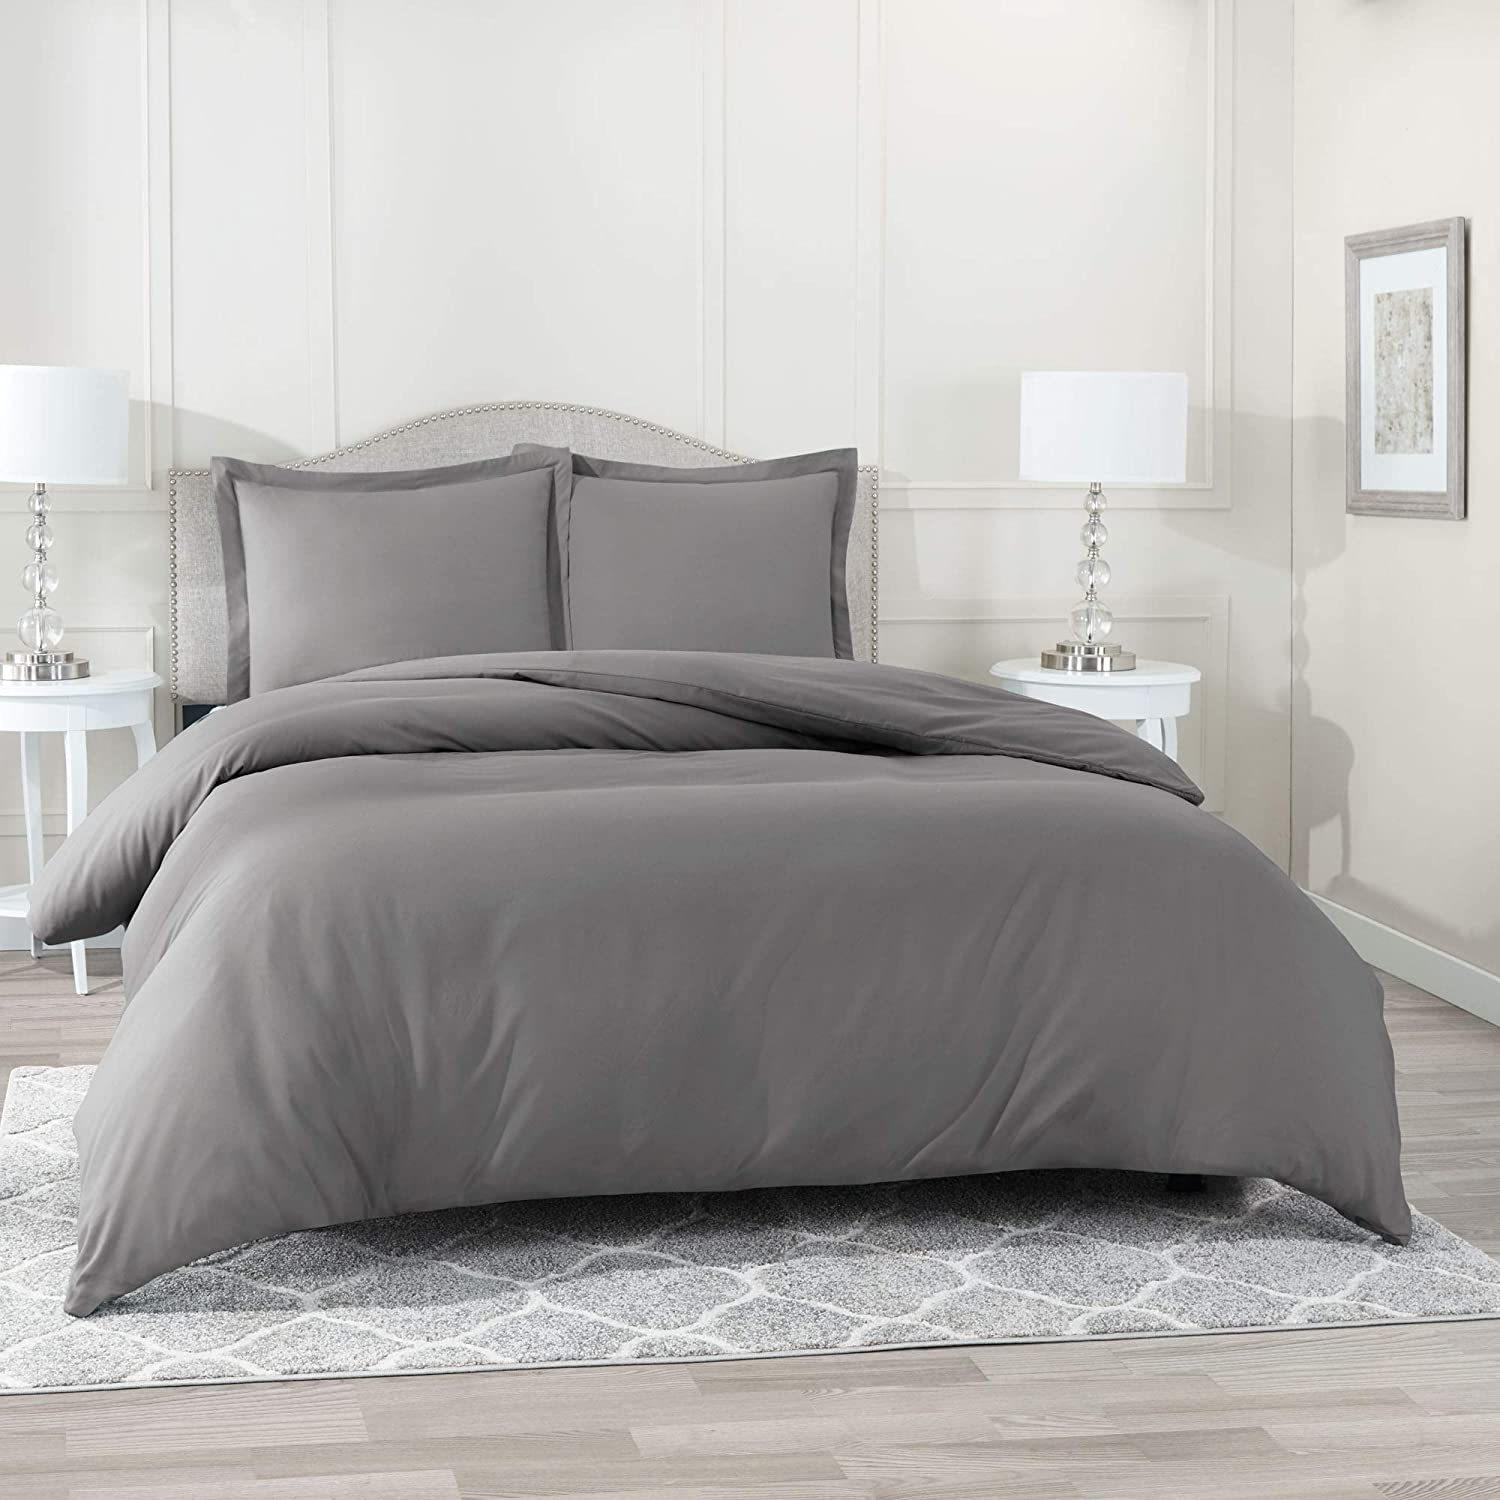 Nestl Bedding Duvet Cover 3 Piece Set – Ultra Soft Double Brushed Microfiber Hotel Collection